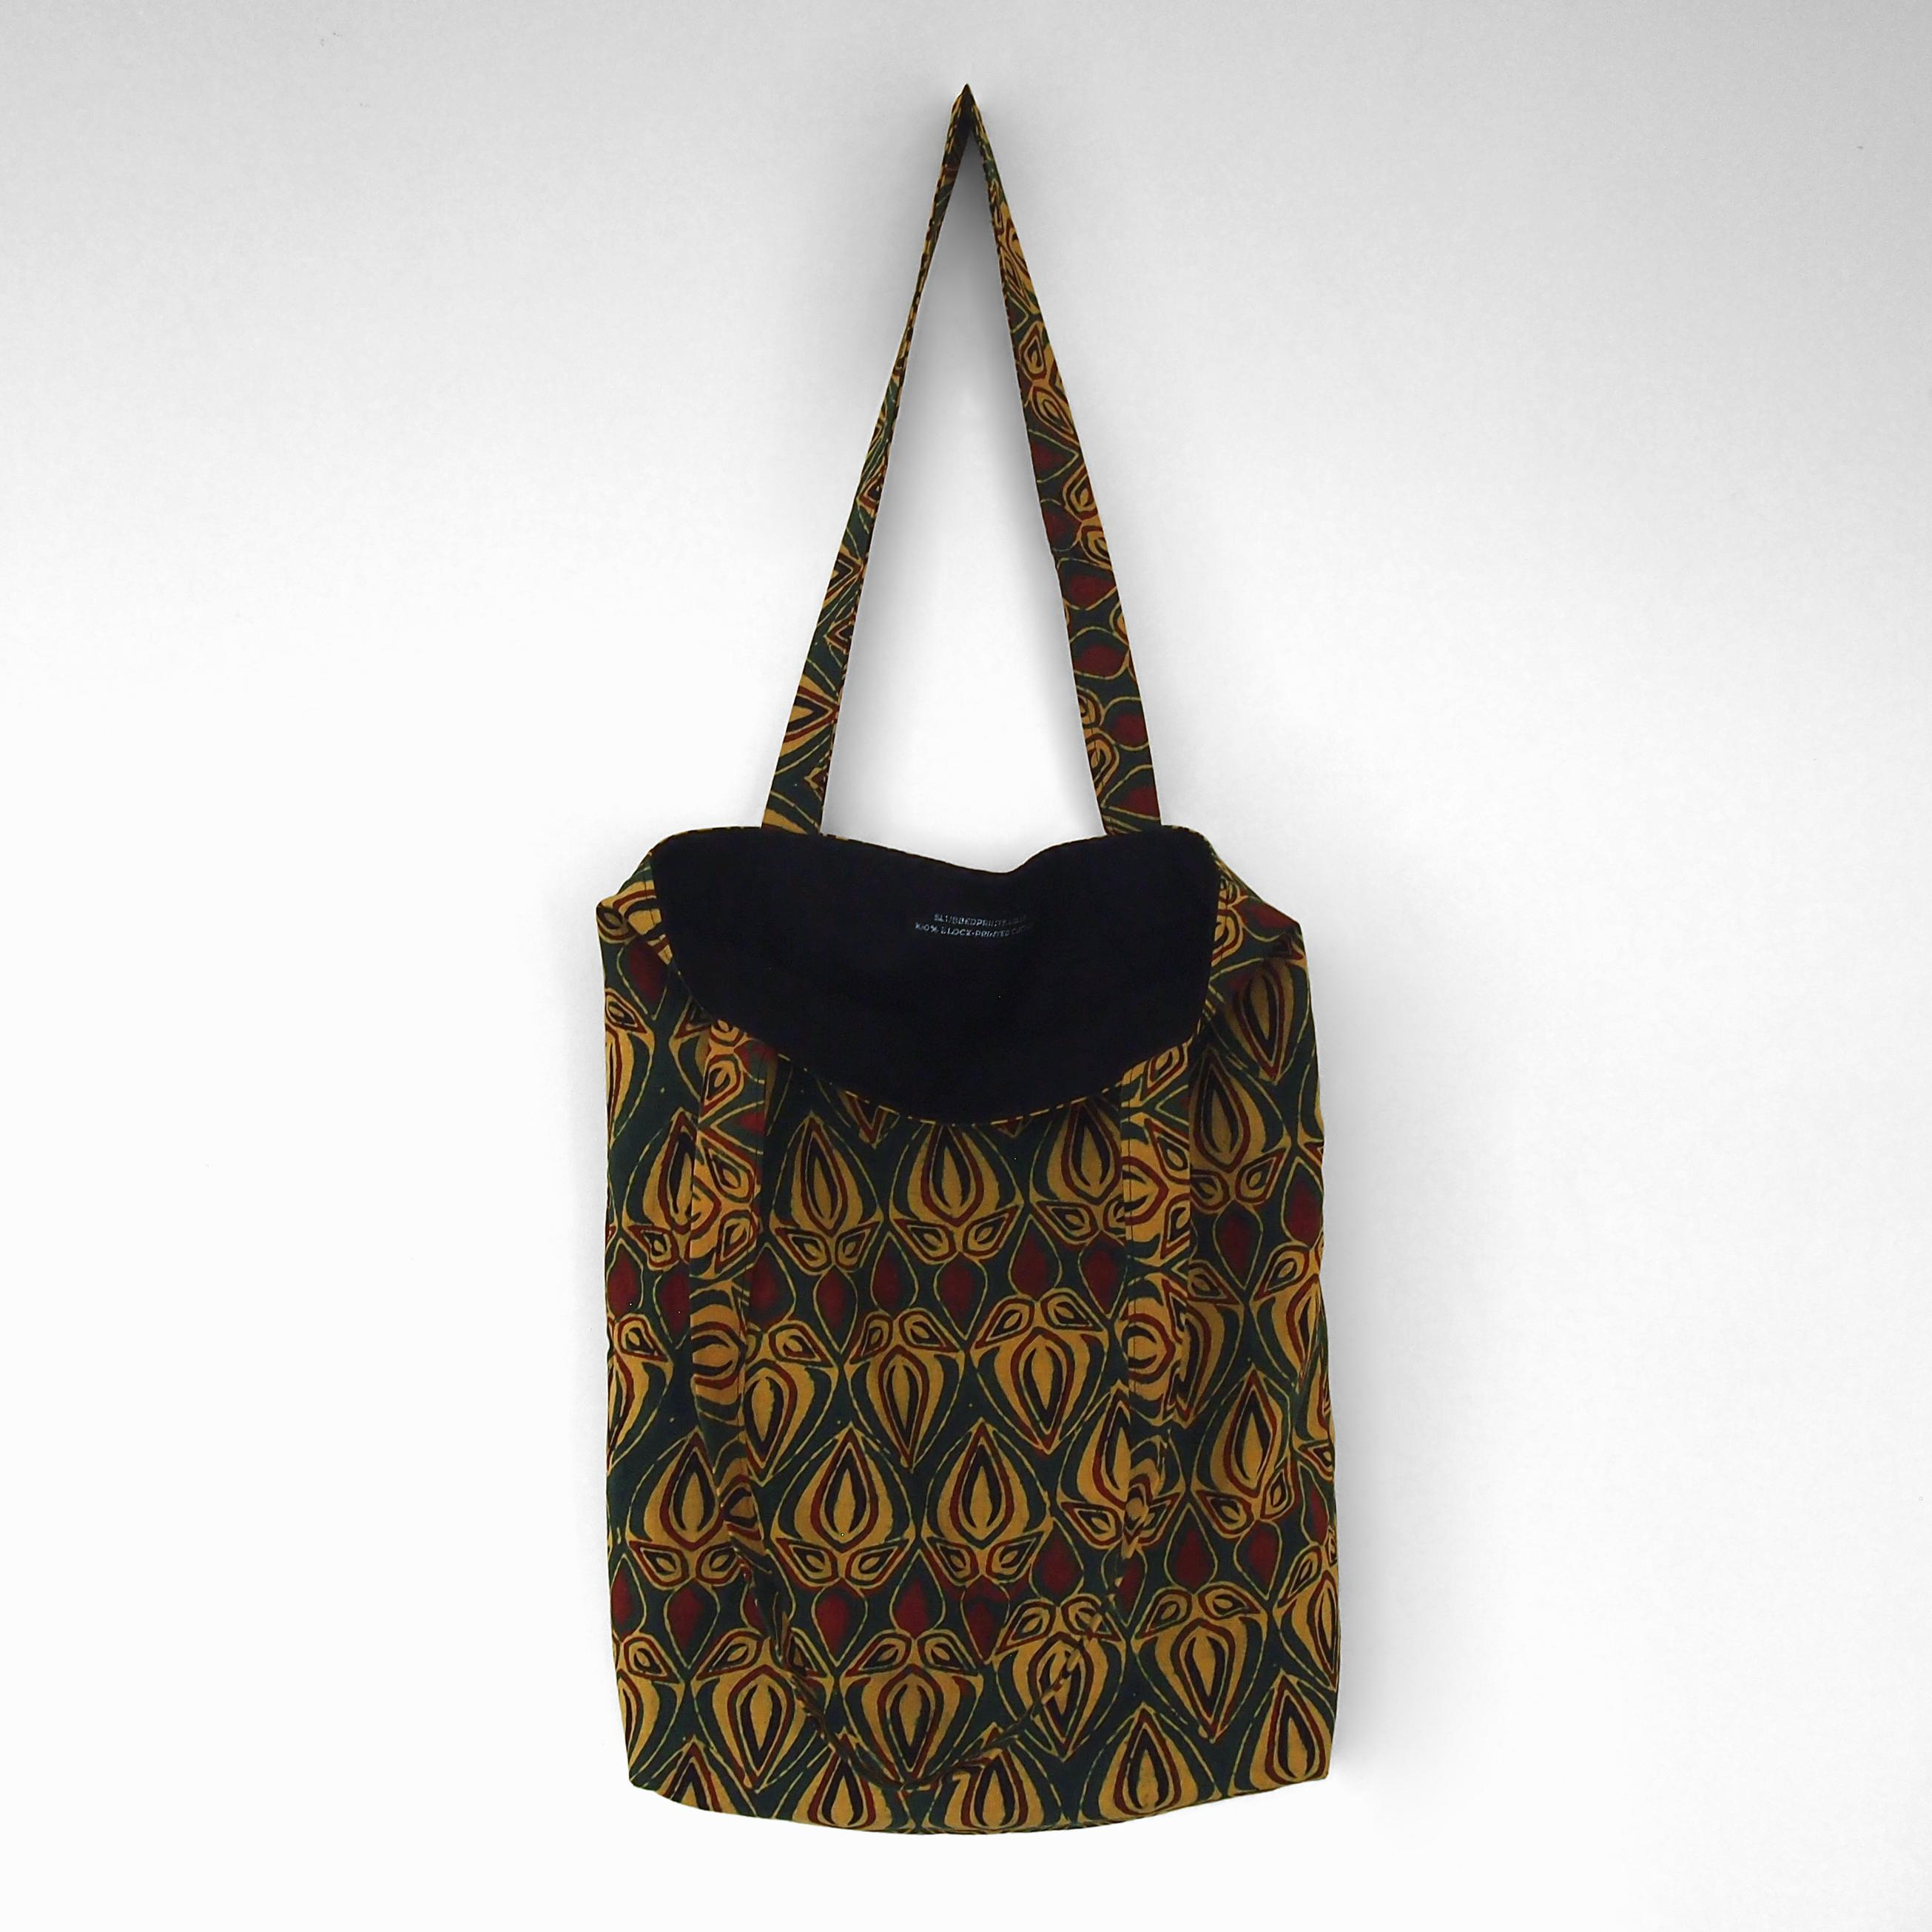 block printed cotton tote bag, green, yellow red bud, natural dye, lined with black cotton, open